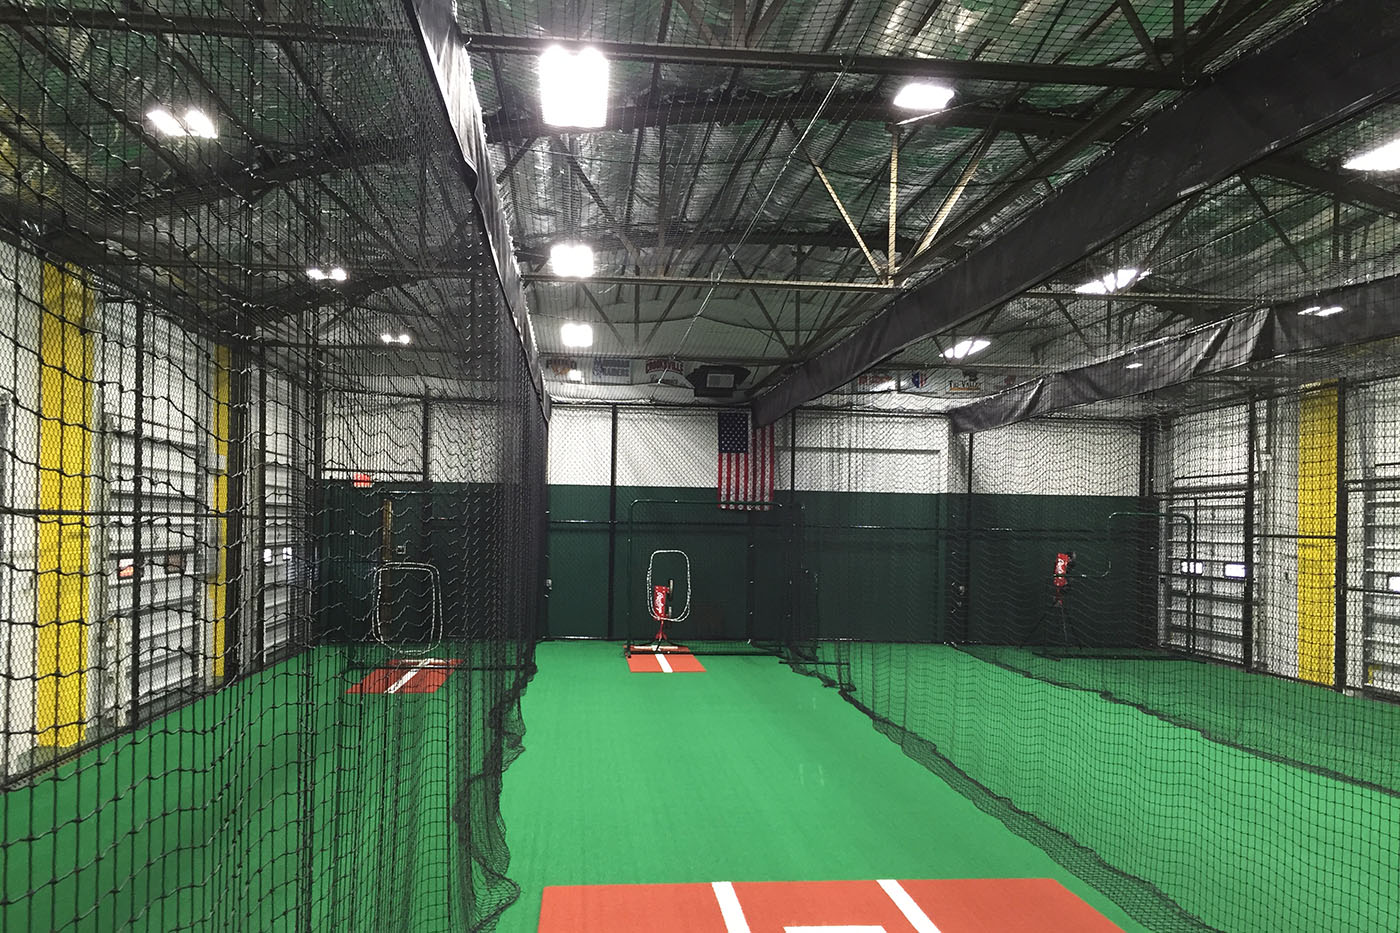 Off Season Batting Cages